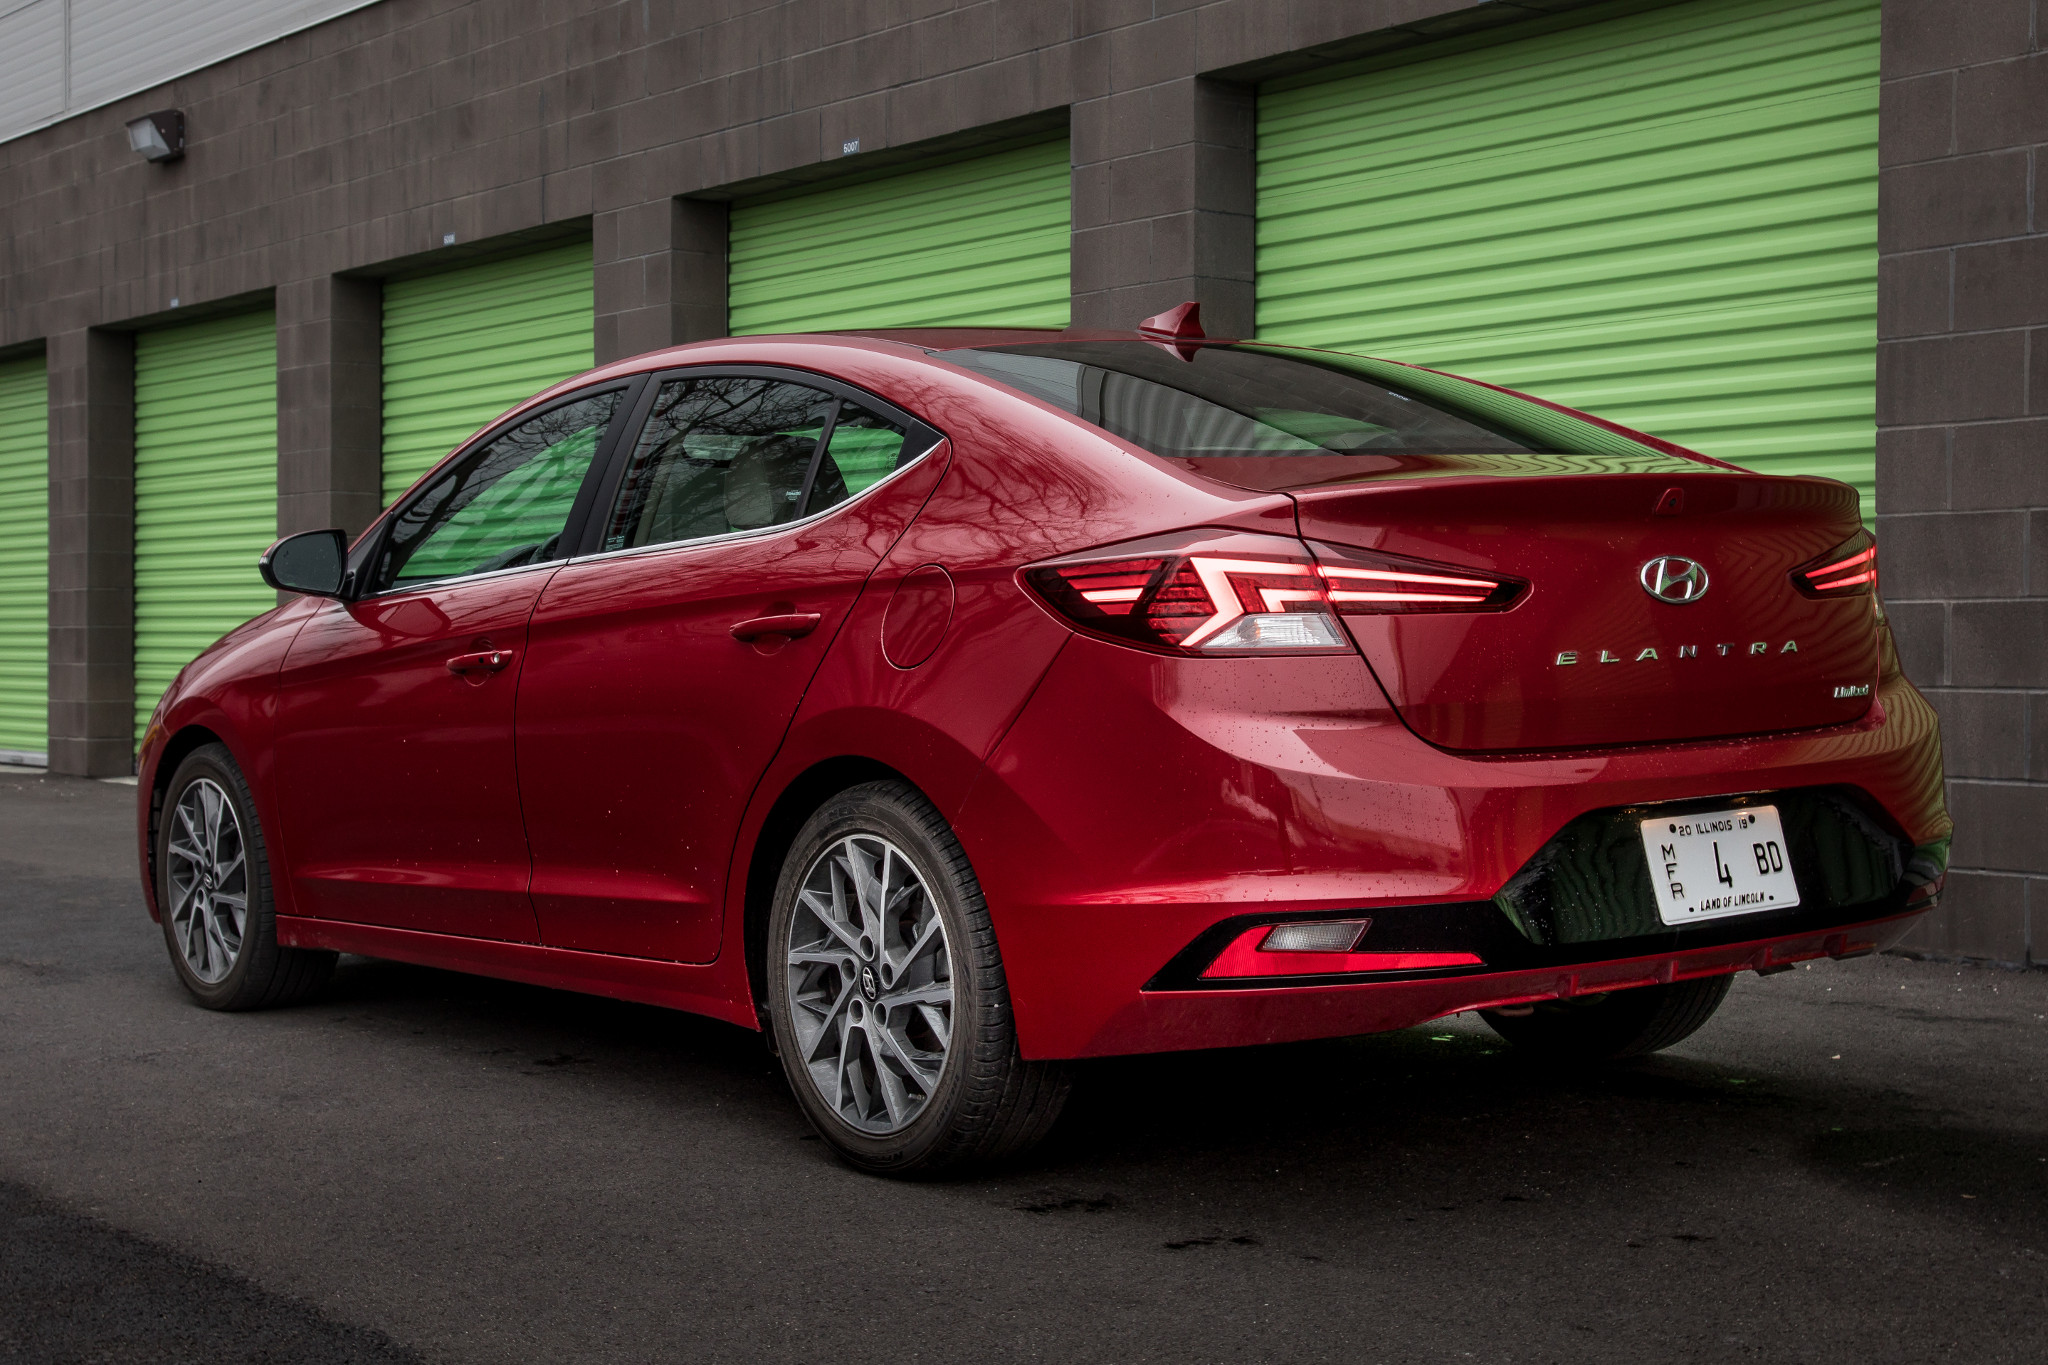 04-hyundai-elantra--2019-brick--exterior--profile--rear--red.jpg